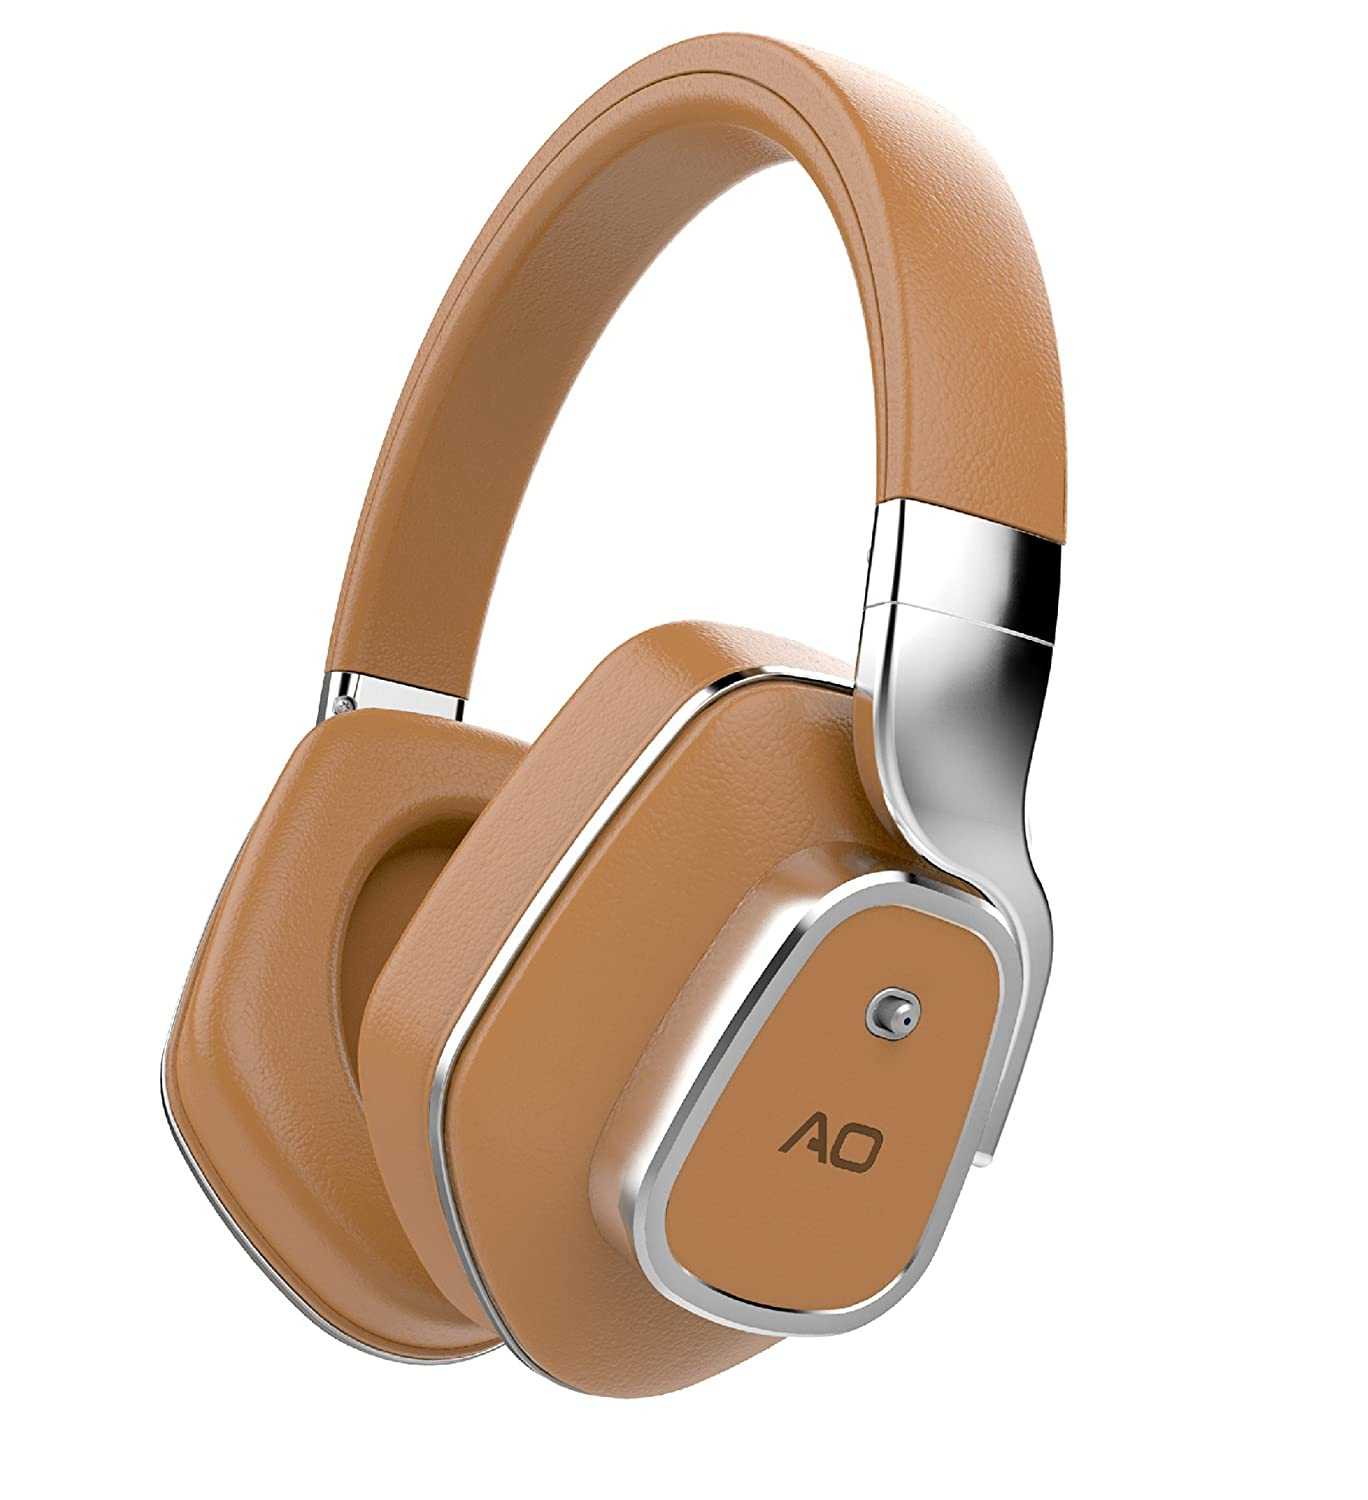 AO Active Noise Cancelling Wireless Bluetooth Headphones - M7 (Brown)